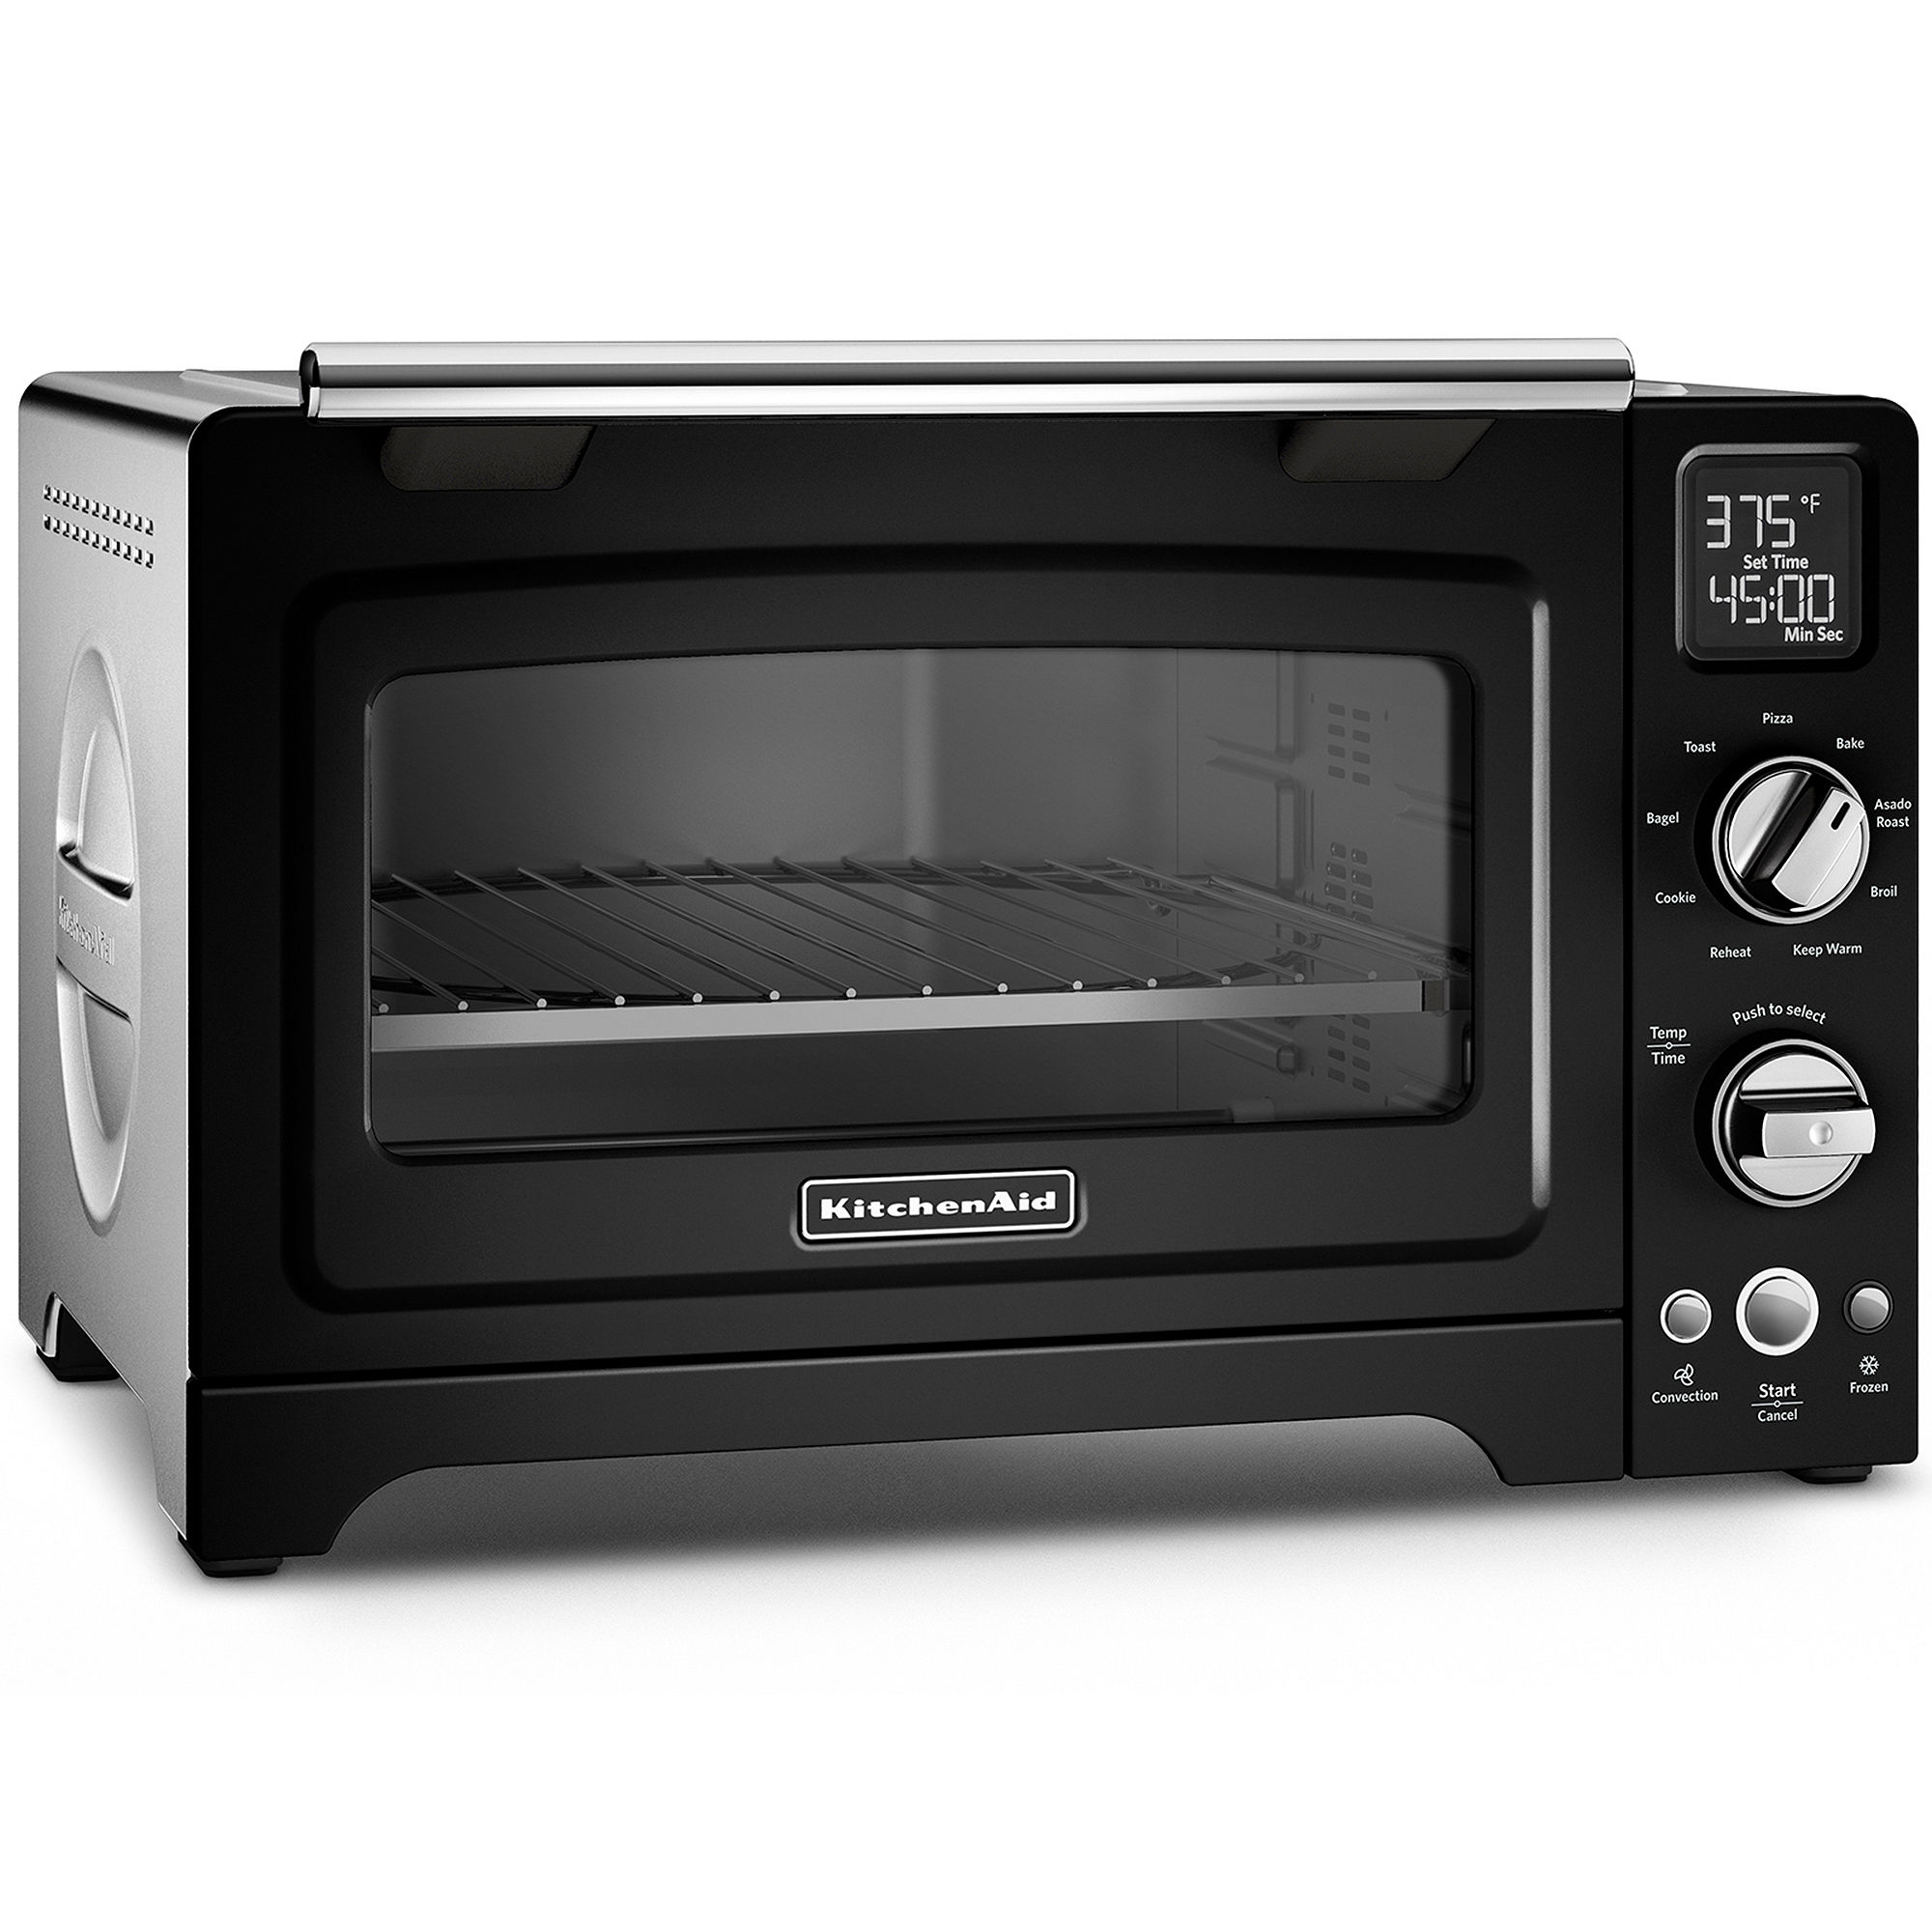 Kitchenaid Convection Countertop Oven Accessories : ... KitchenAid KCO275OB Onyx Black Convection Countertop Oven upcitemdb